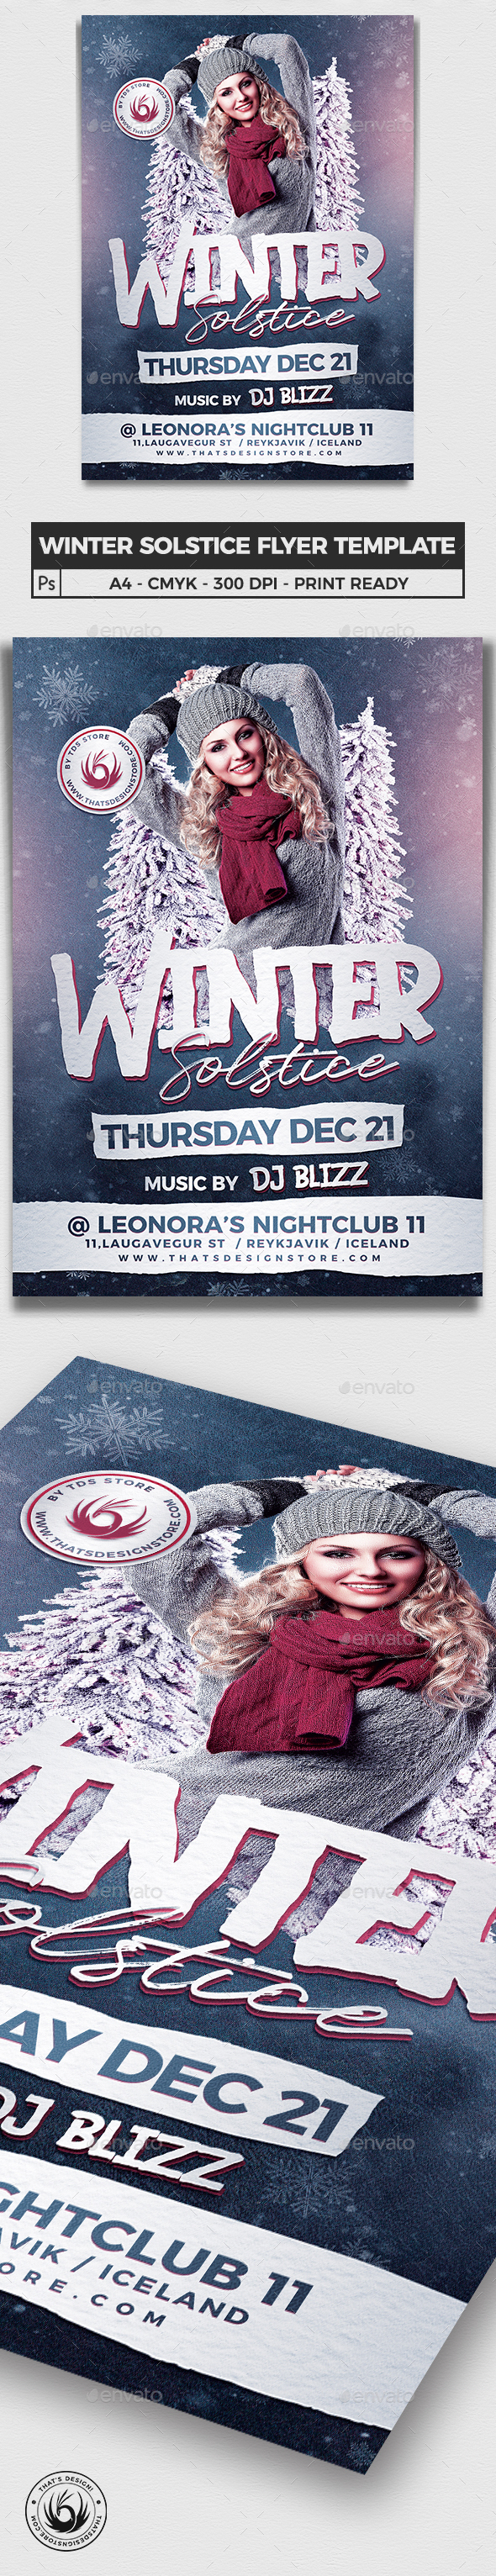 Winter Solstice Flyer Template V2 - Clubs & Parties Events